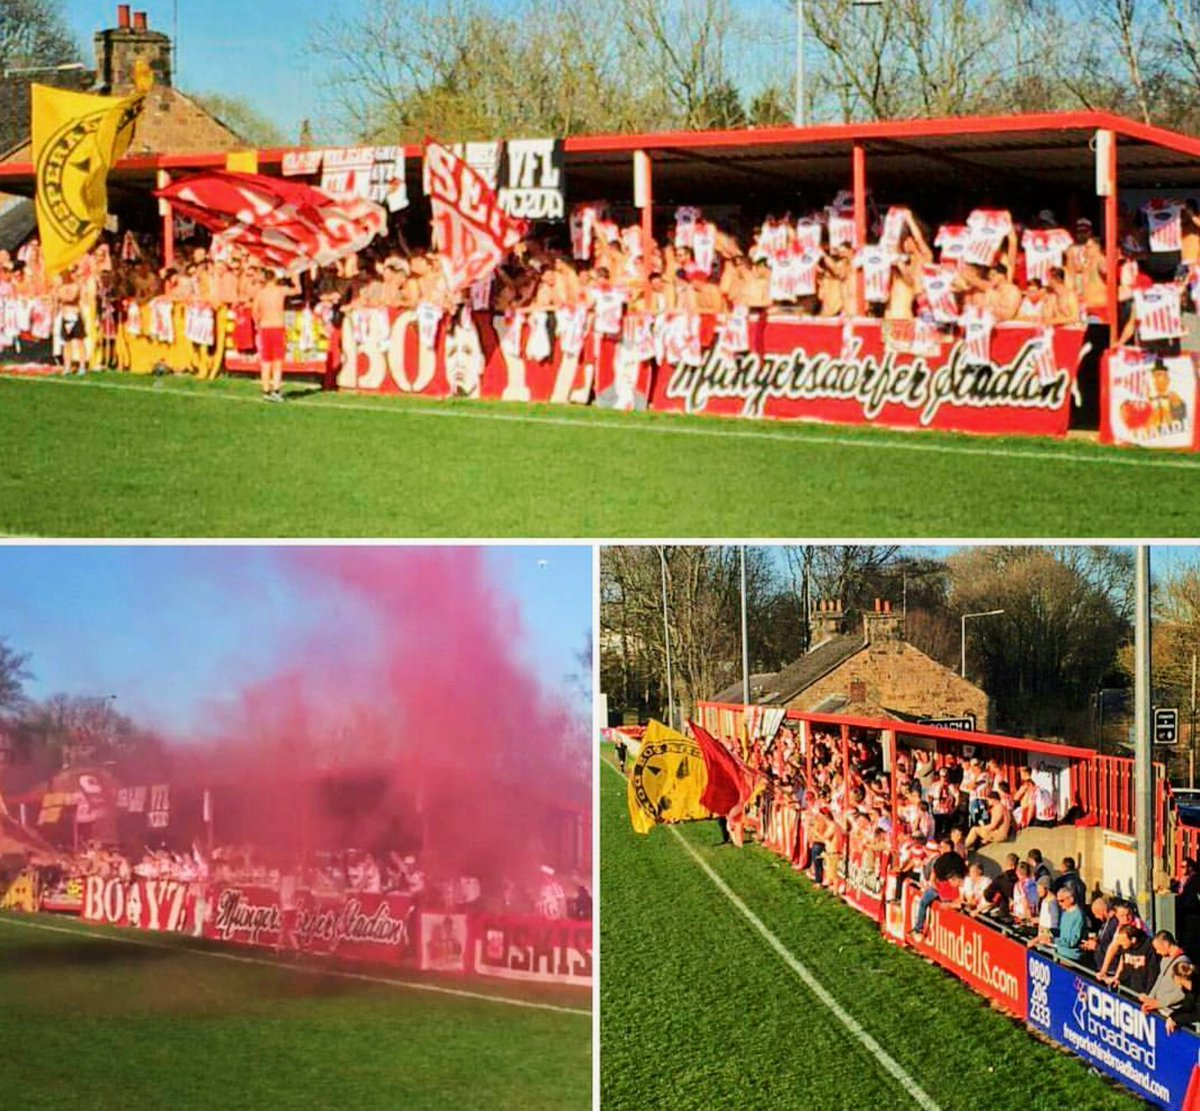 Real Cavo On Twitter Desperados And Boyz Away At Sheffield Fc Cca 400 Sheffield Desperadosundboyz Des99 Ultras